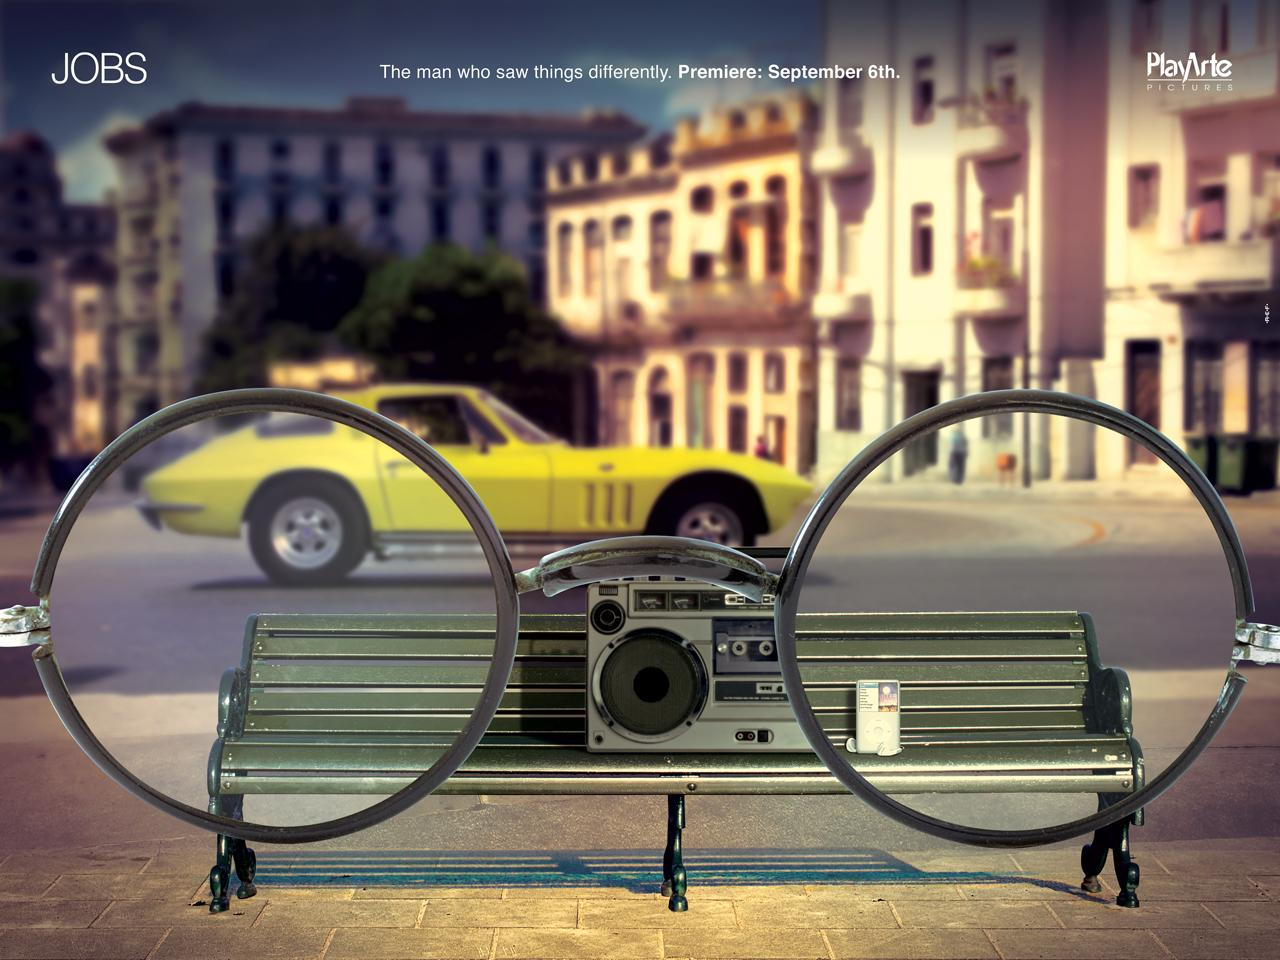 PlayArte Pictures Print Ad -  Different, 3